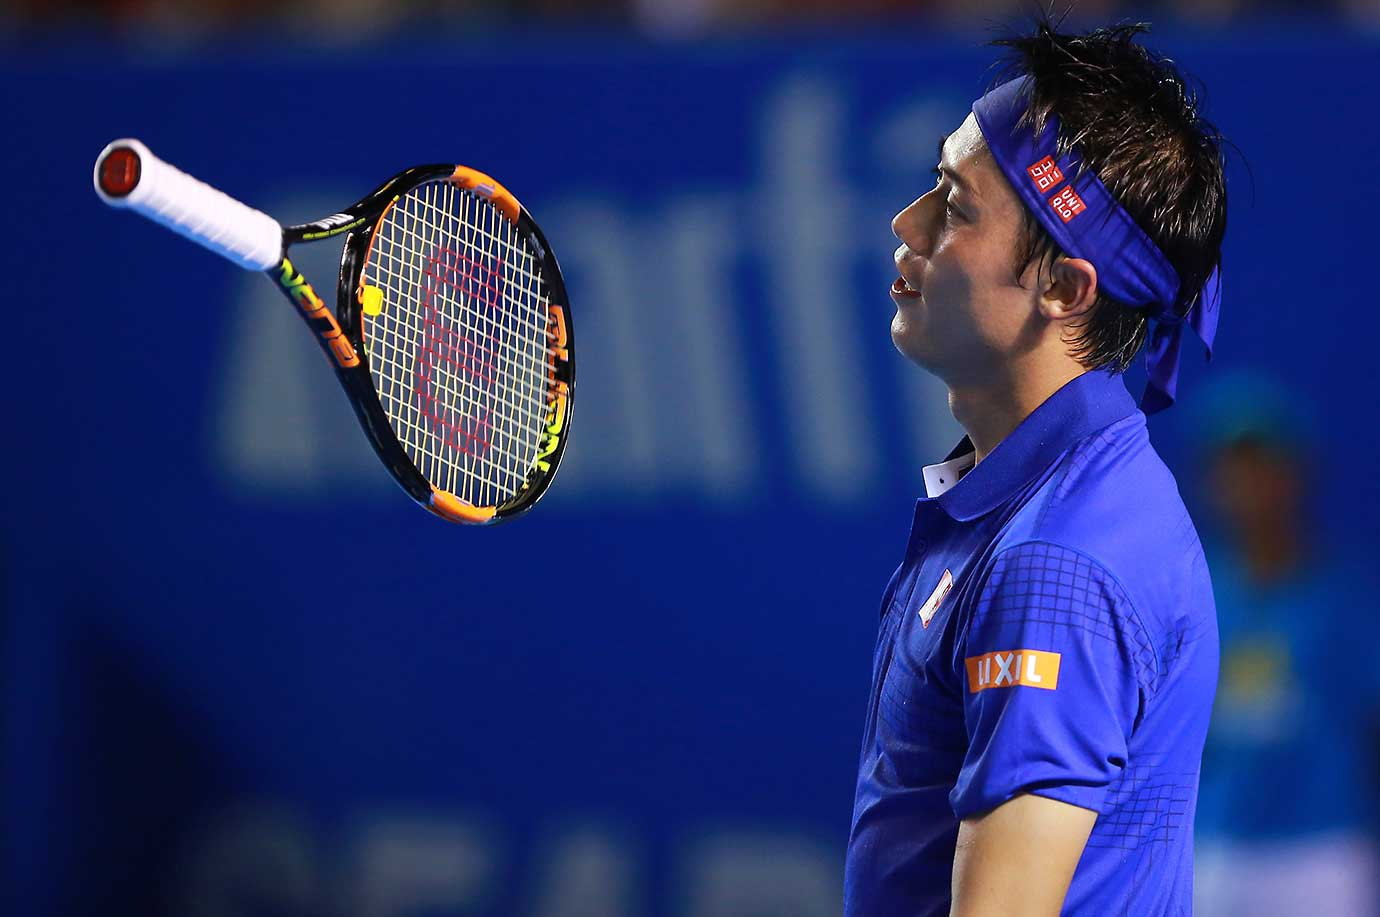 Kei Nishikori of Japan reacts during a match against Sam Querrey in Acapulco, Mexico.